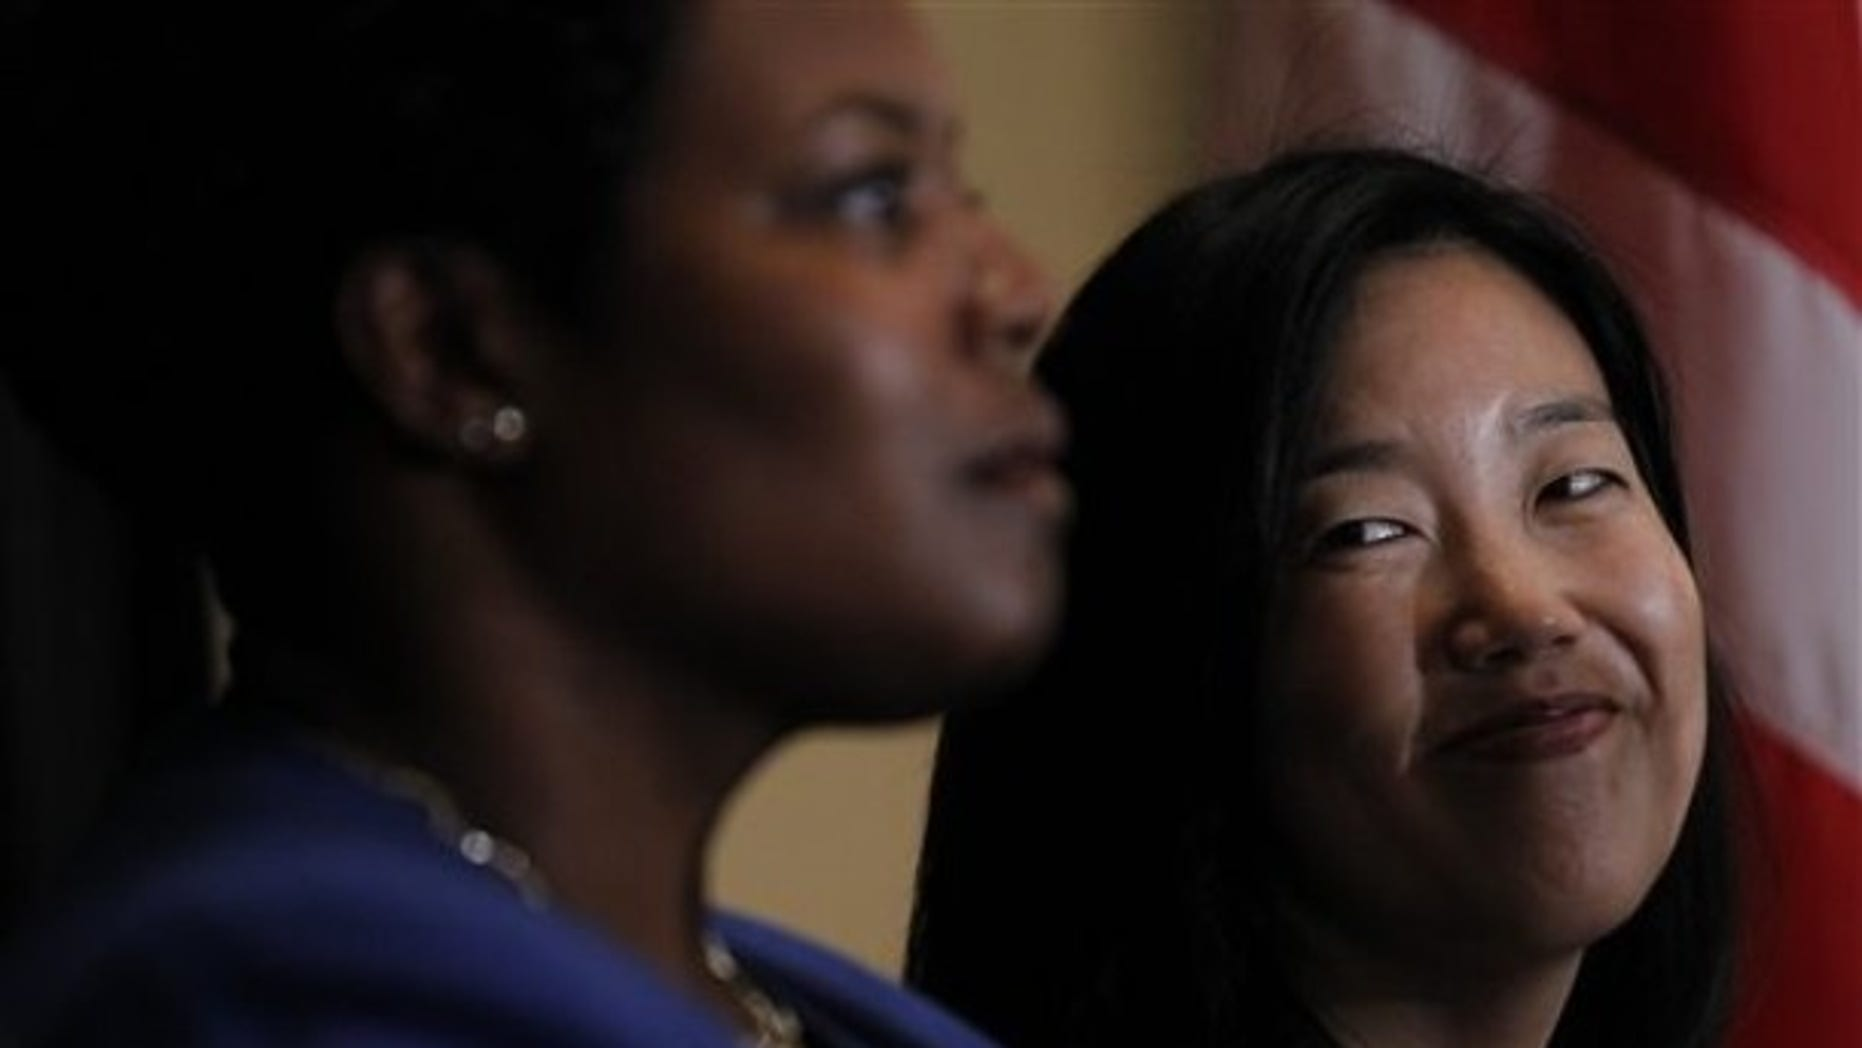 DC Schools Chancellor Michelle Rhee, right, smiles during an announcement that she is resigning, Wednesday, Oct. 13, 2010, during a news conference in Washington. (AP)